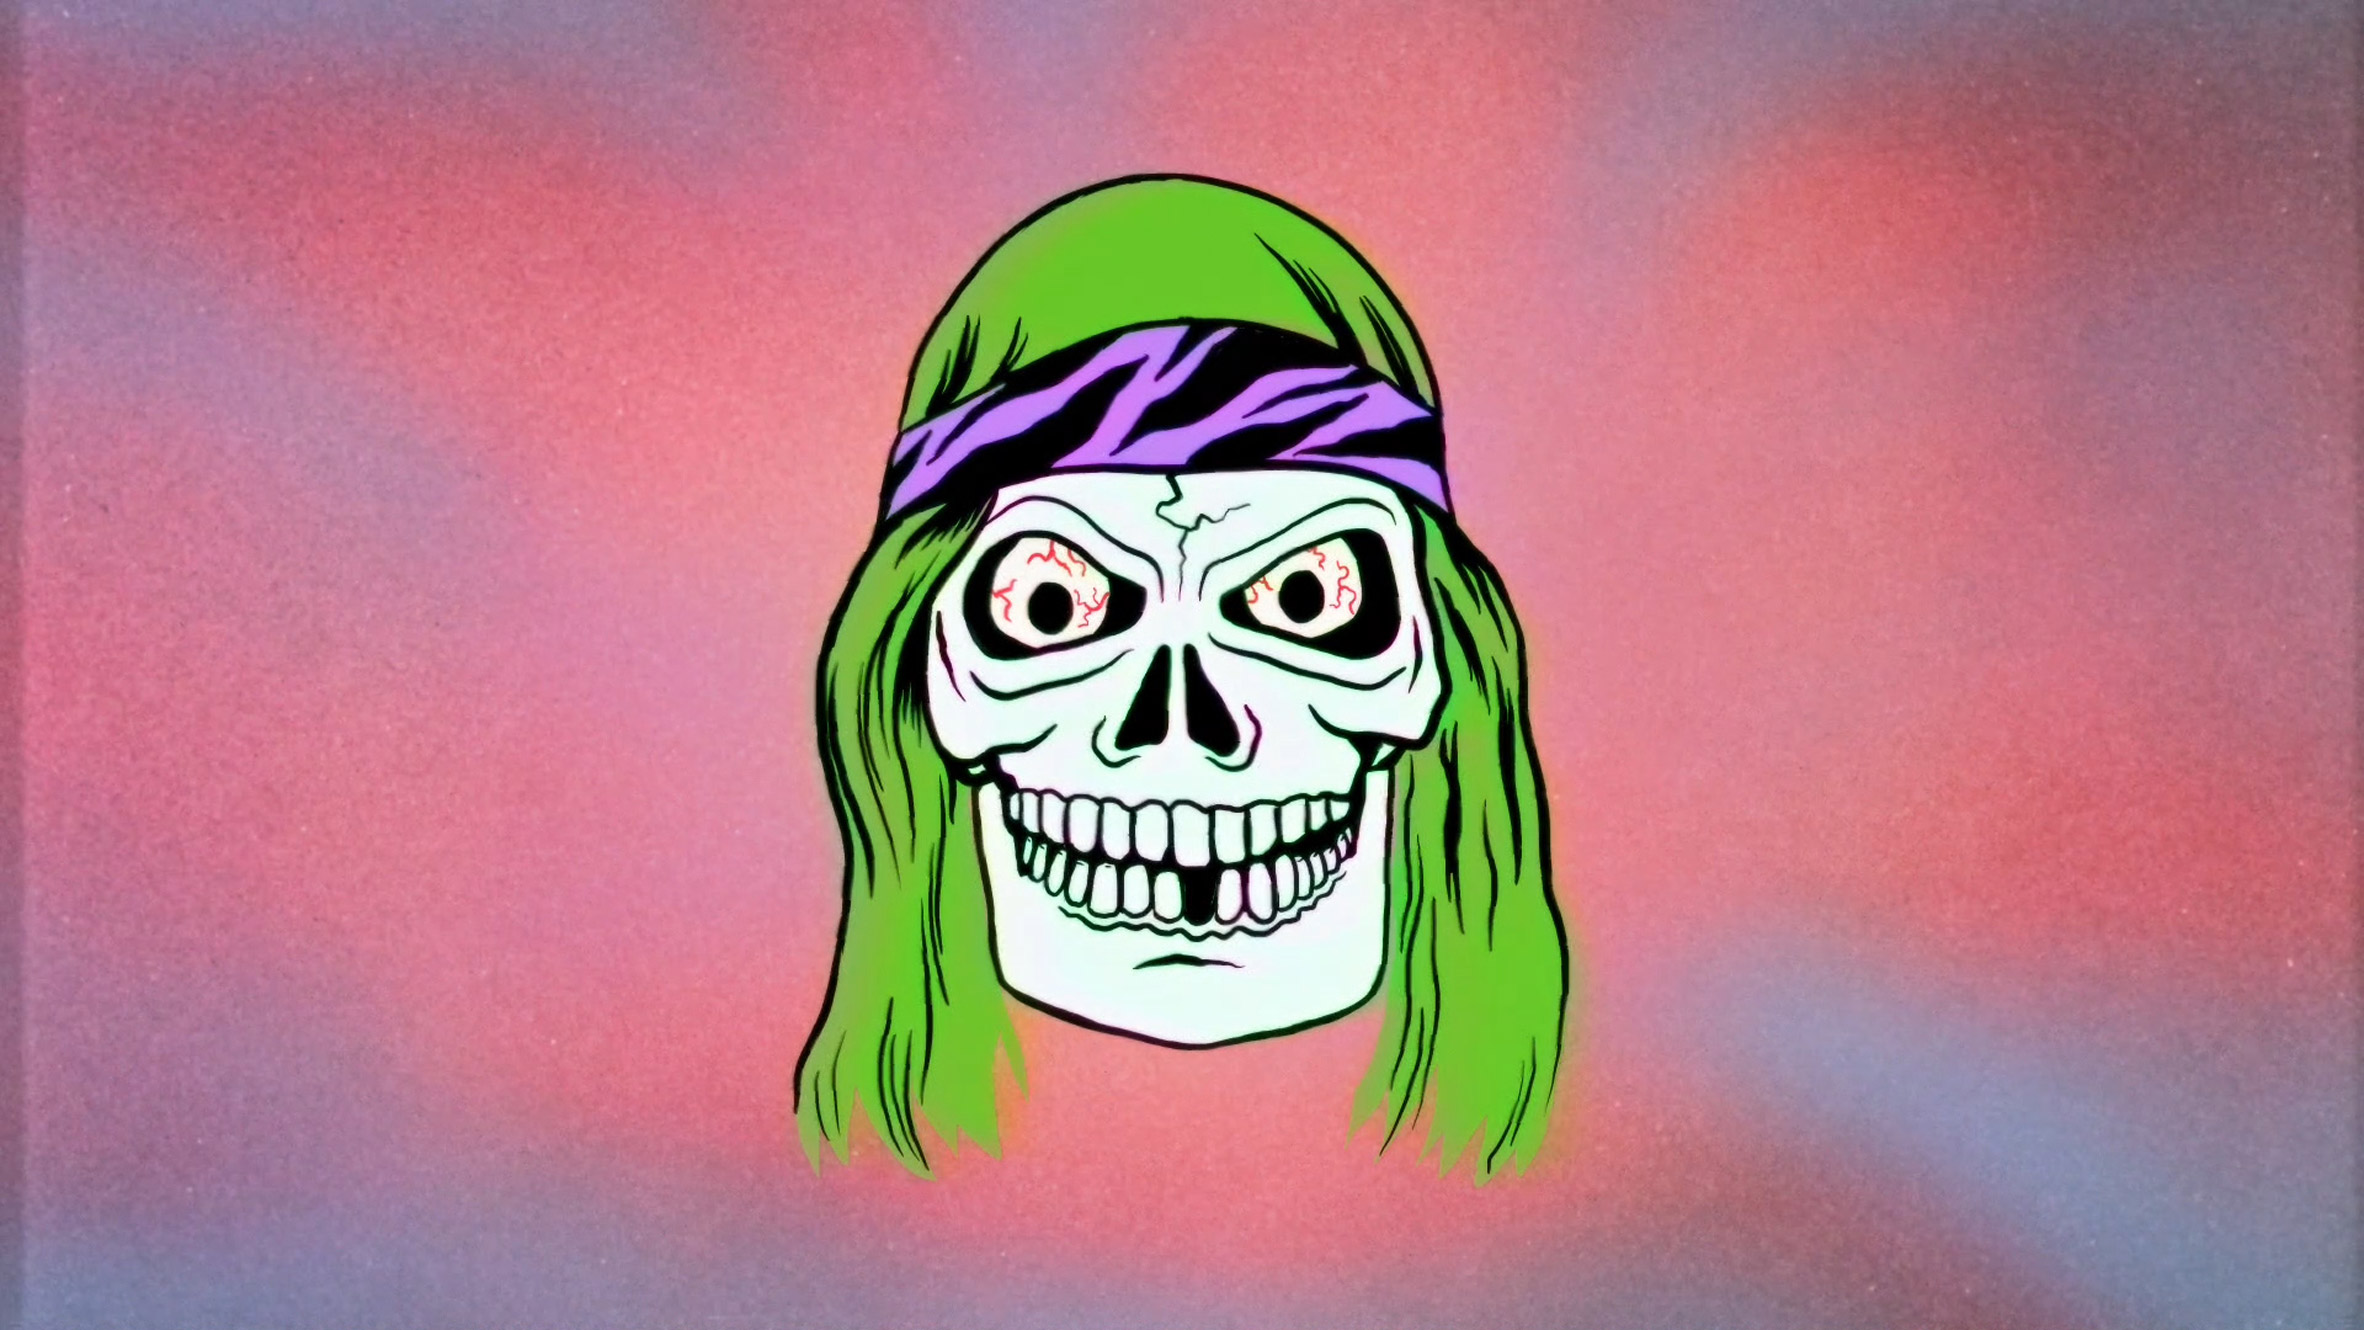 Motorbike-riding ghouls feature in Stevie Gee 80s-inspired animation for Cancer Bats